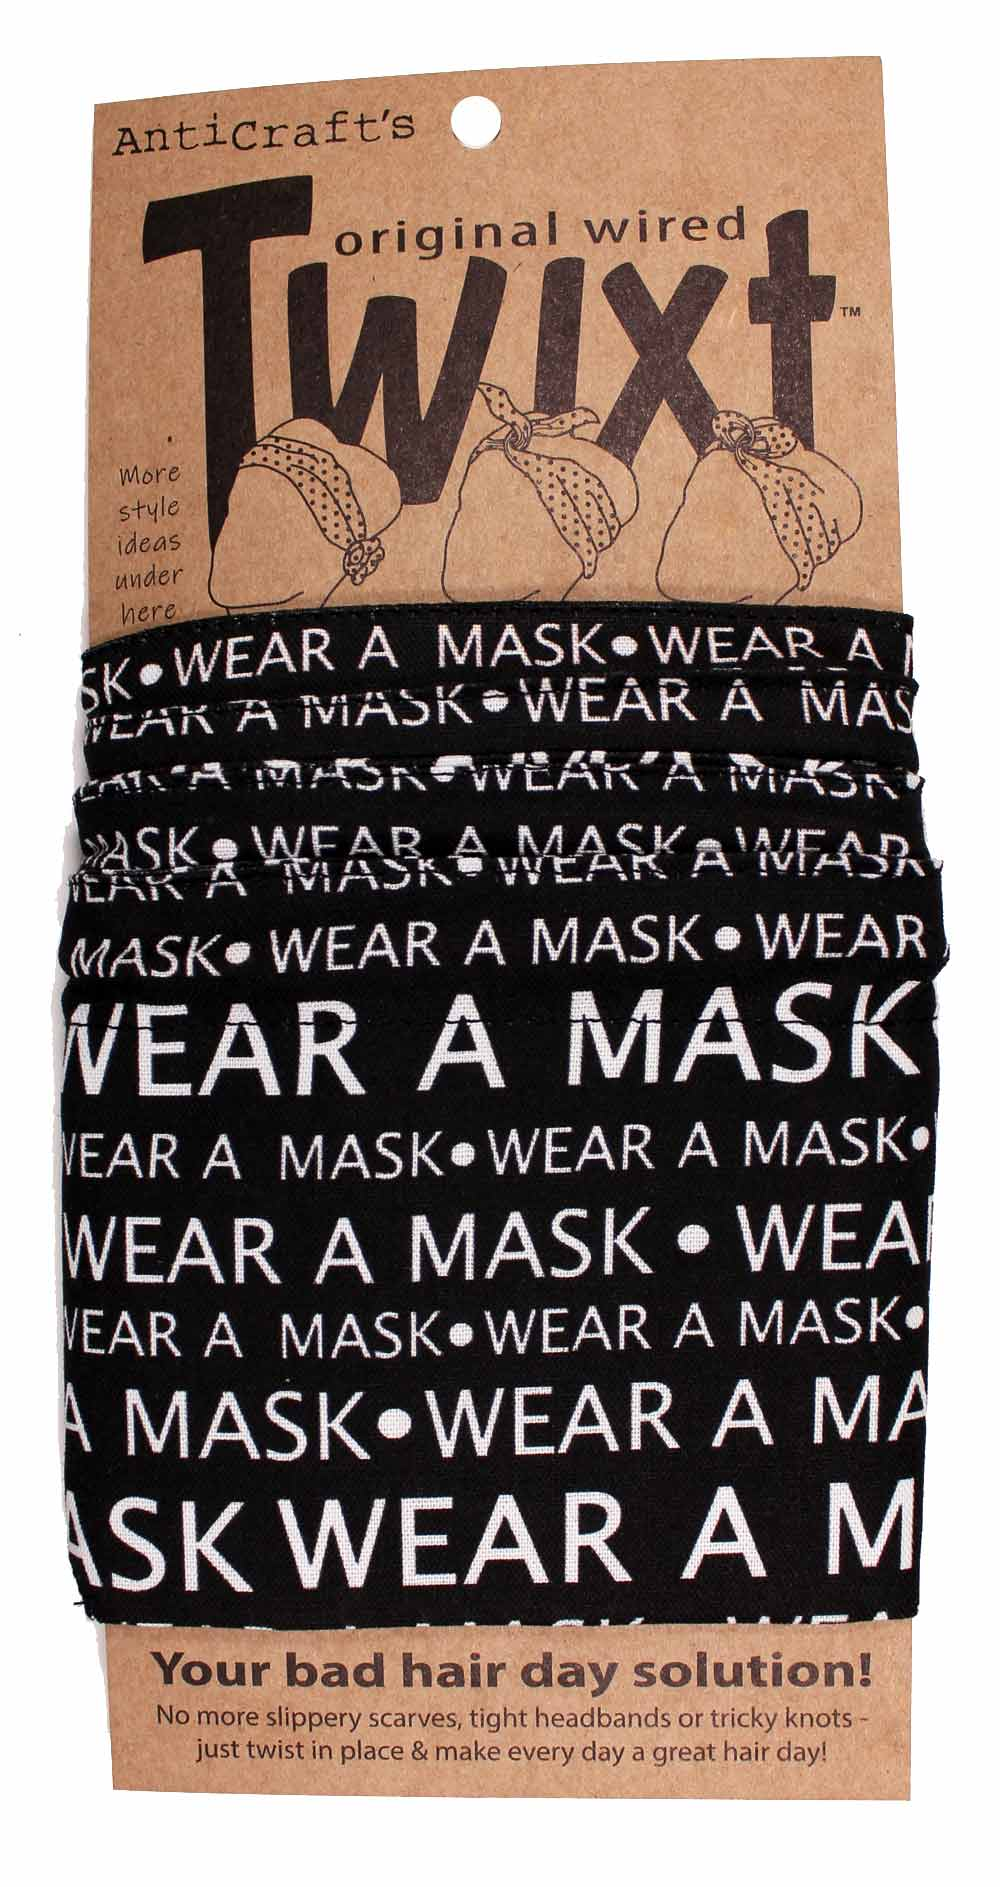 Celebrating 2020 - Wear A Mask - Very Limited Corona Virus Edition Twixt / Wired Head Wrap